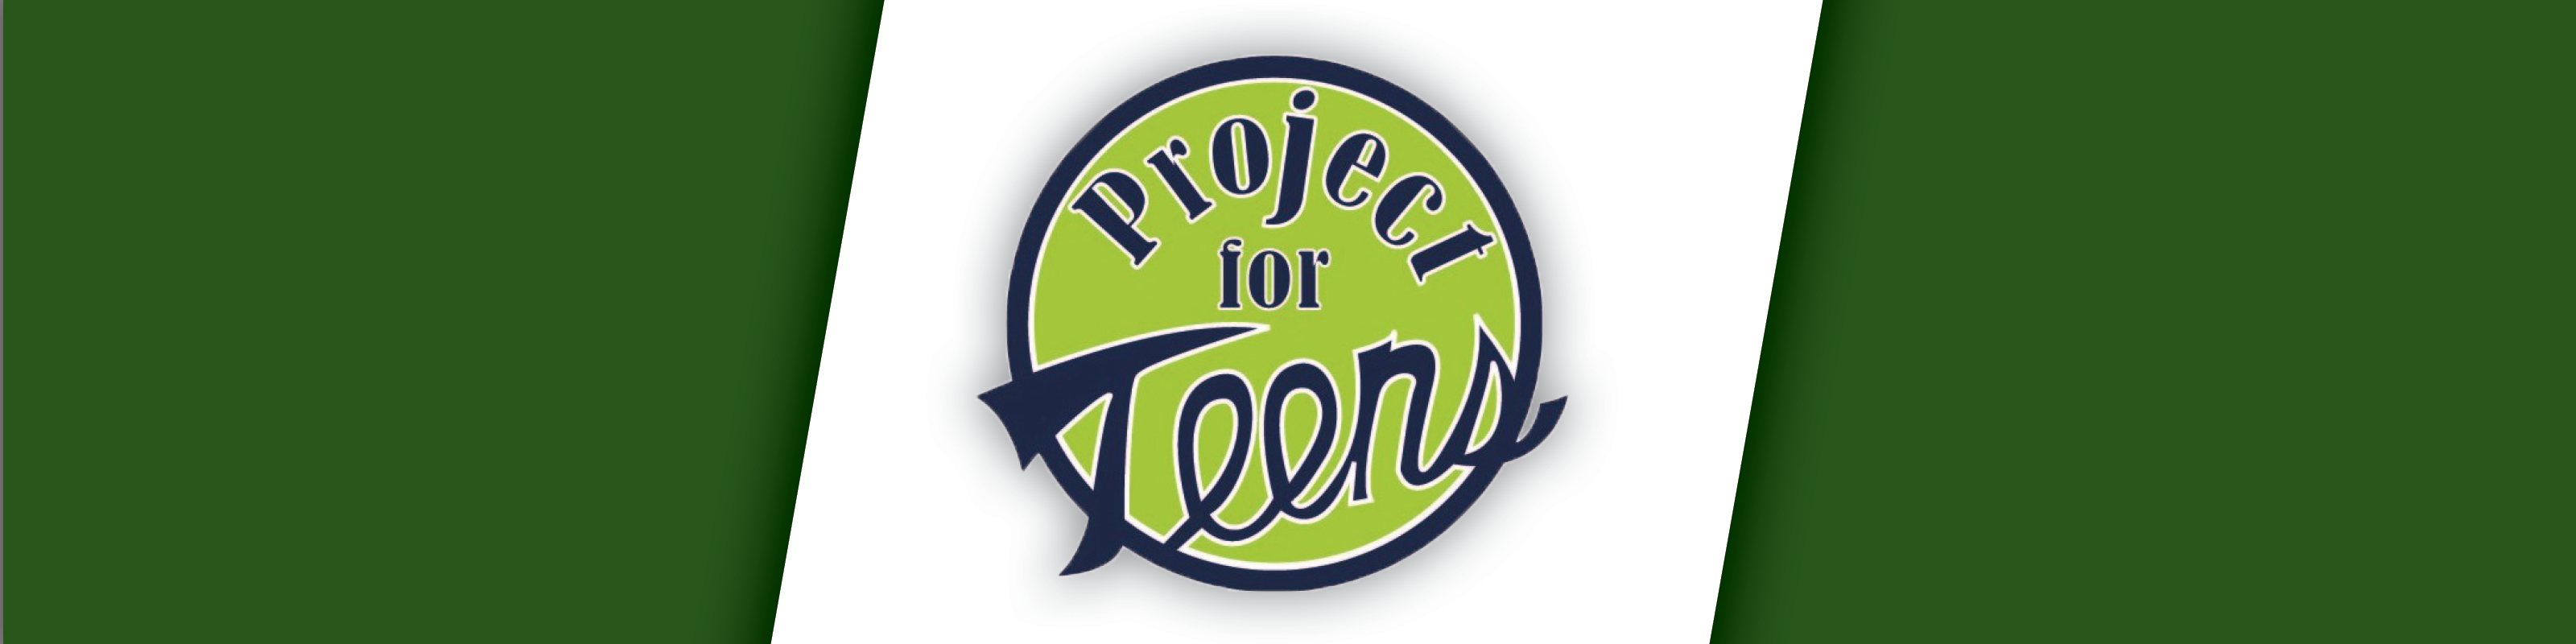 Project for Teens logo